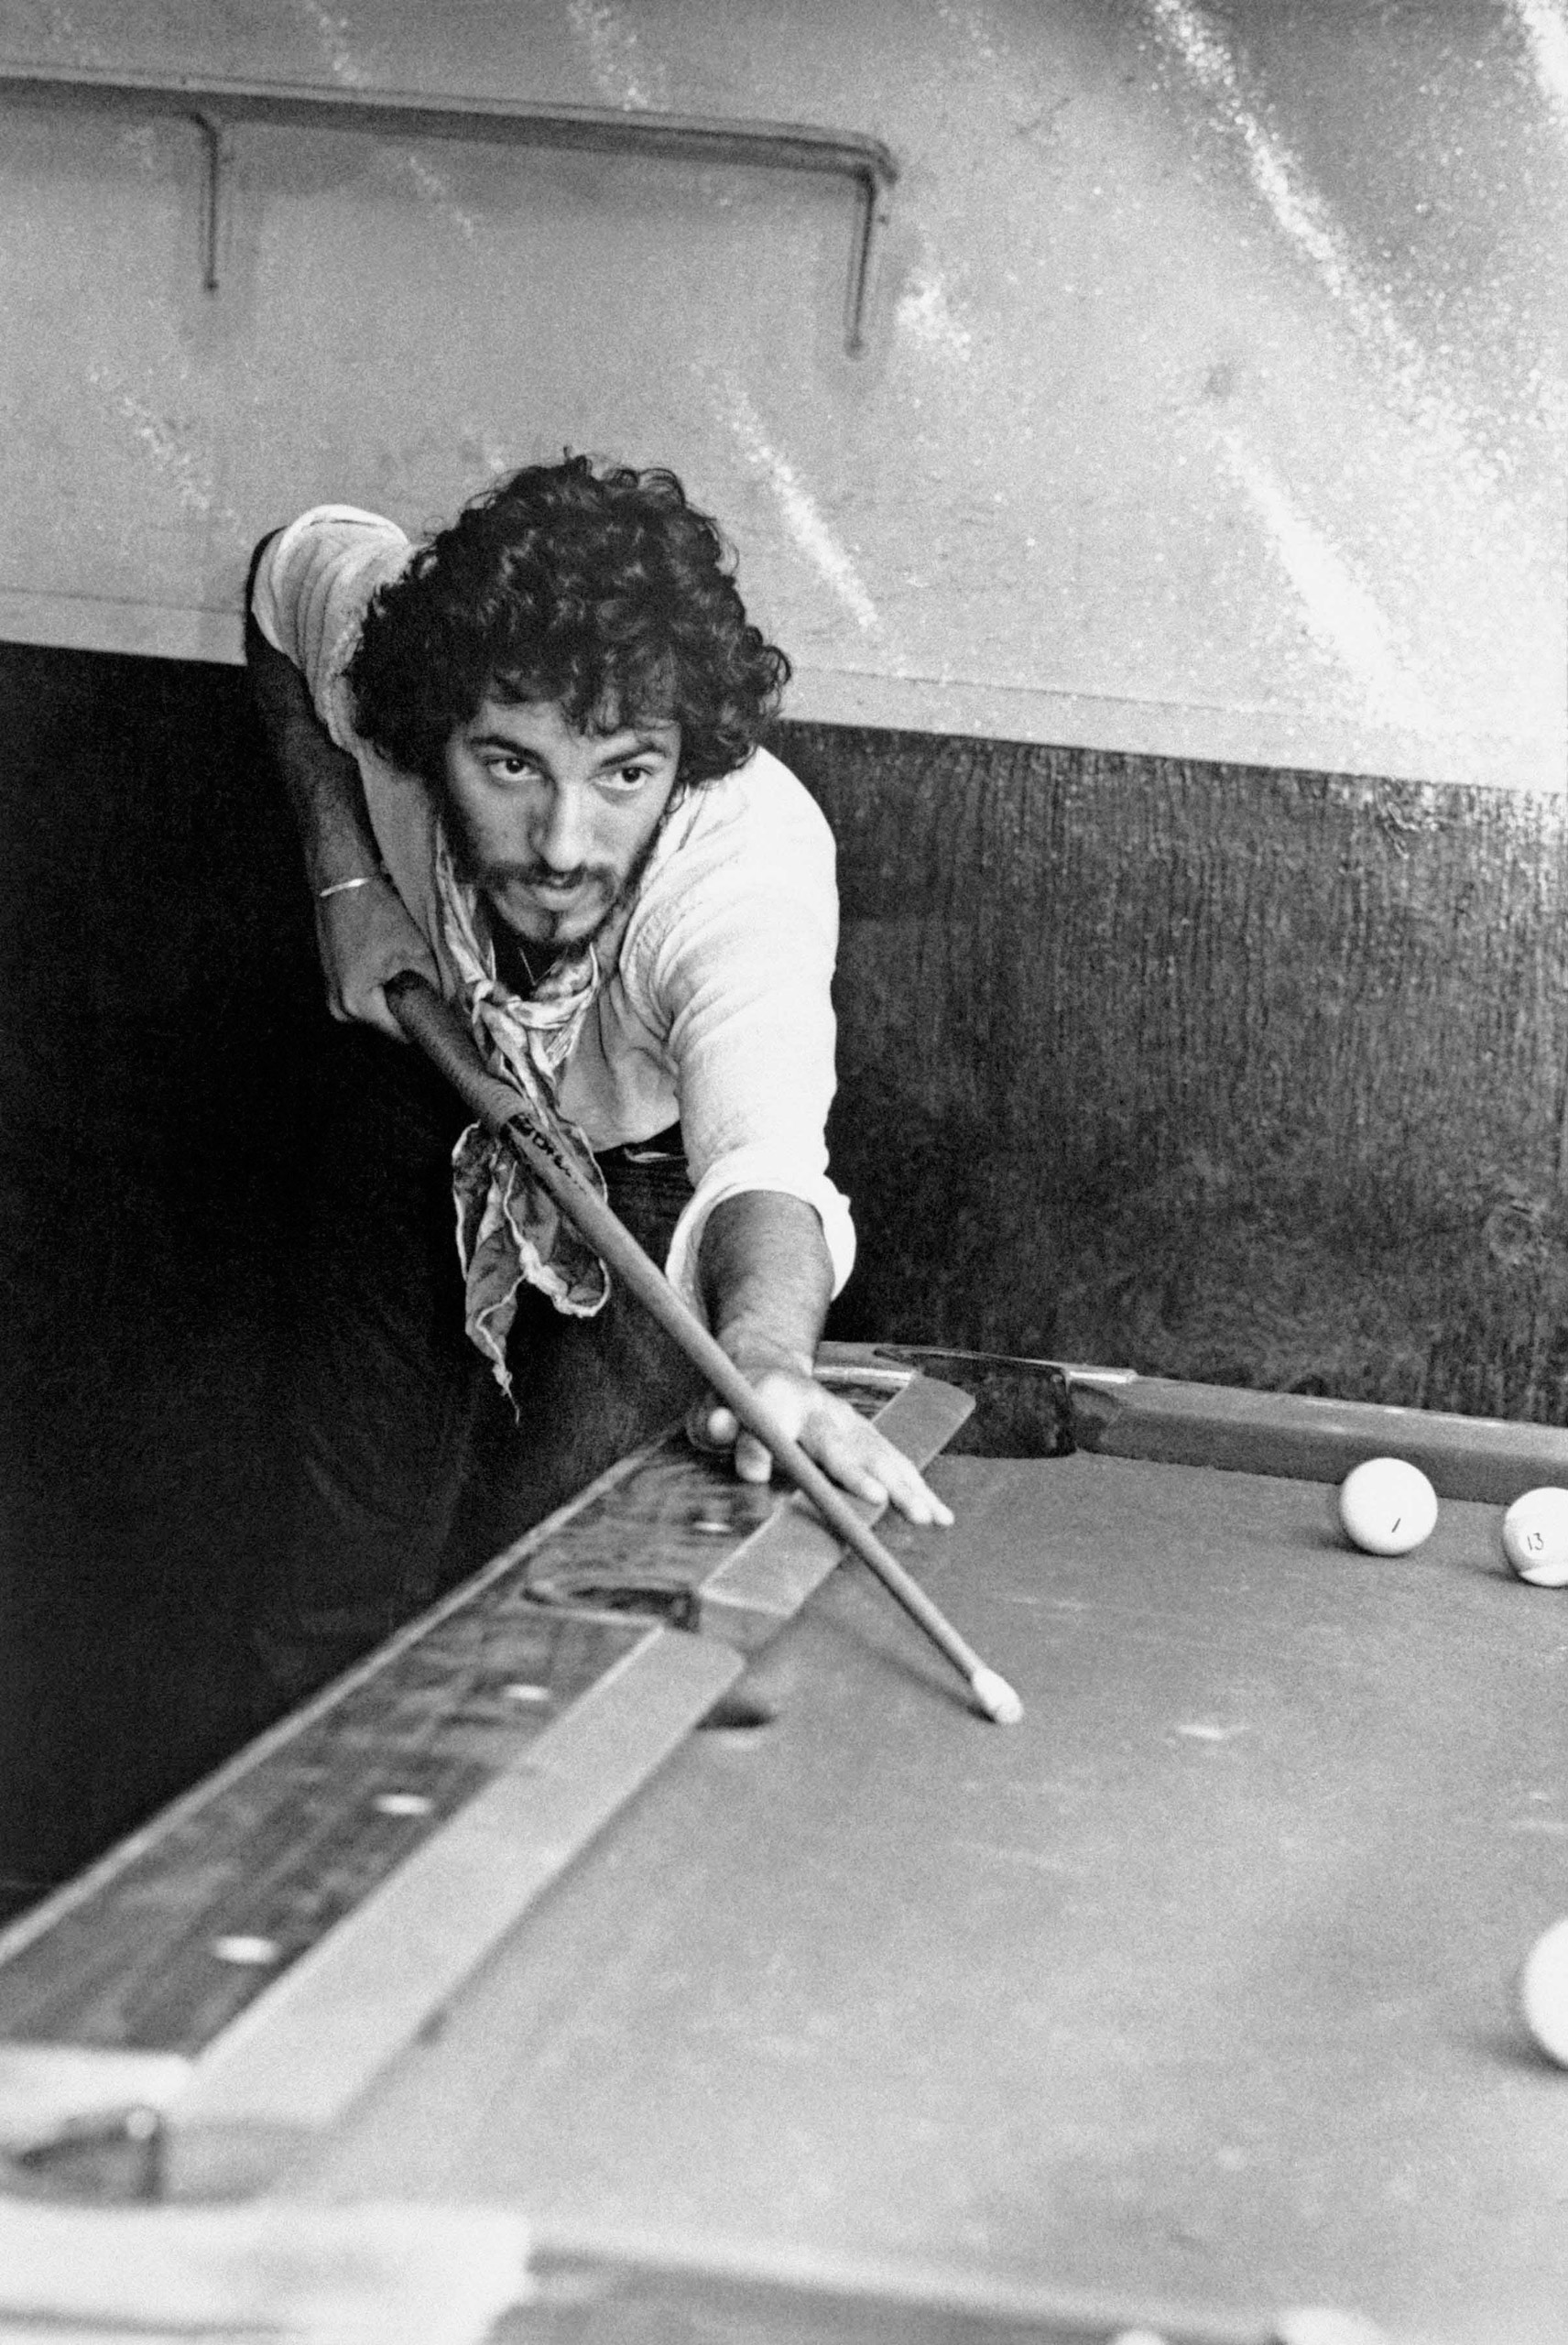 Springsteen playing pool at Lee Dorsey's Ya-Ya Lounge in New Orleans.